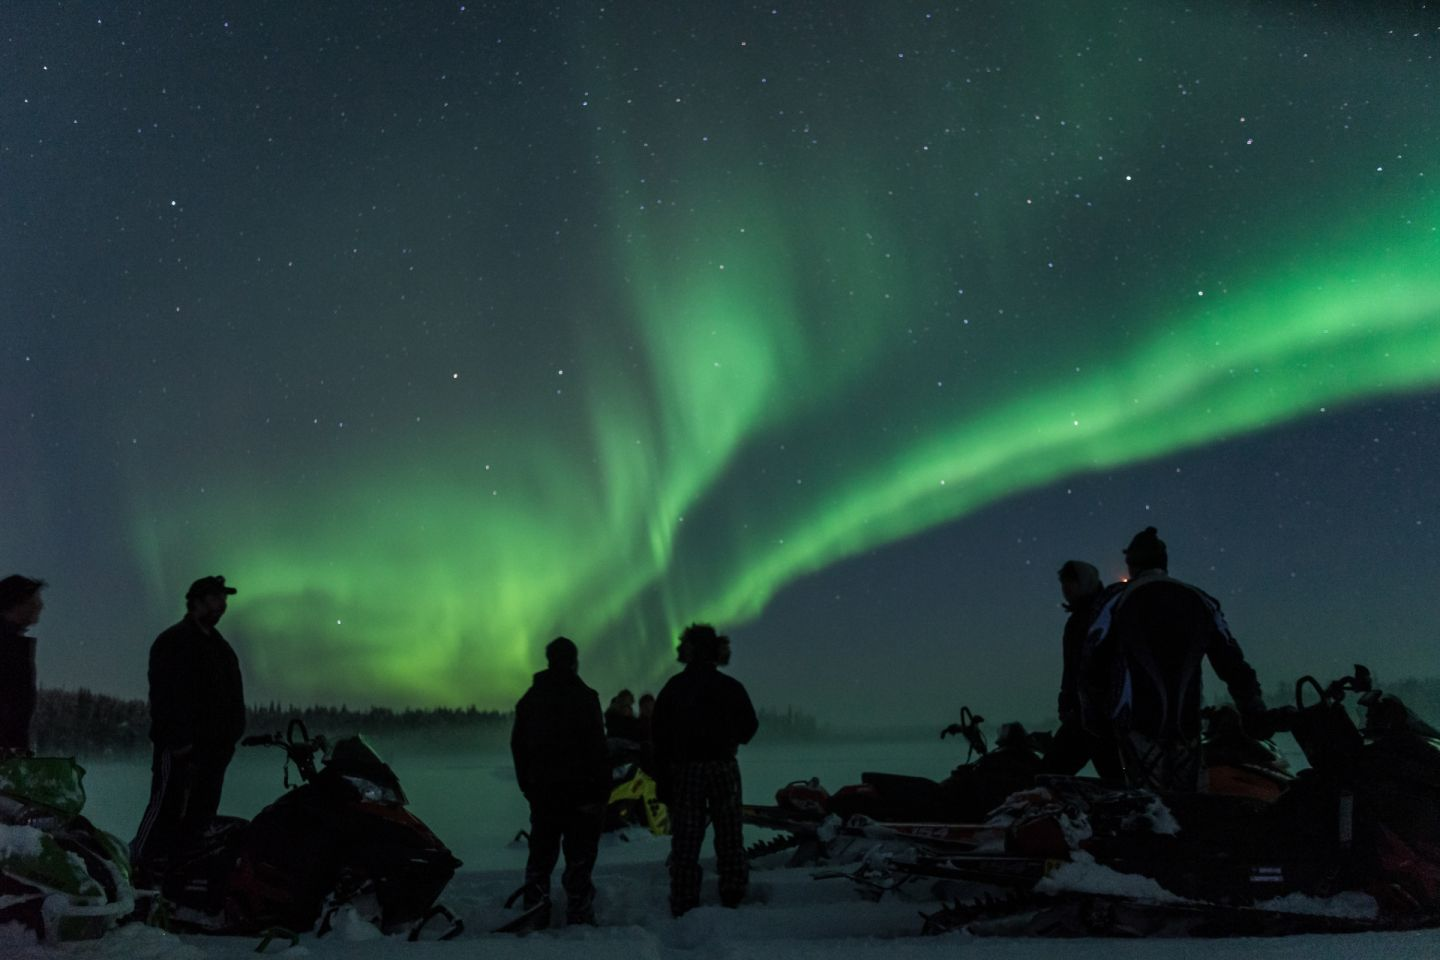 Watching the auroras with Arctic Circle Safaris in Salla, northern Finland